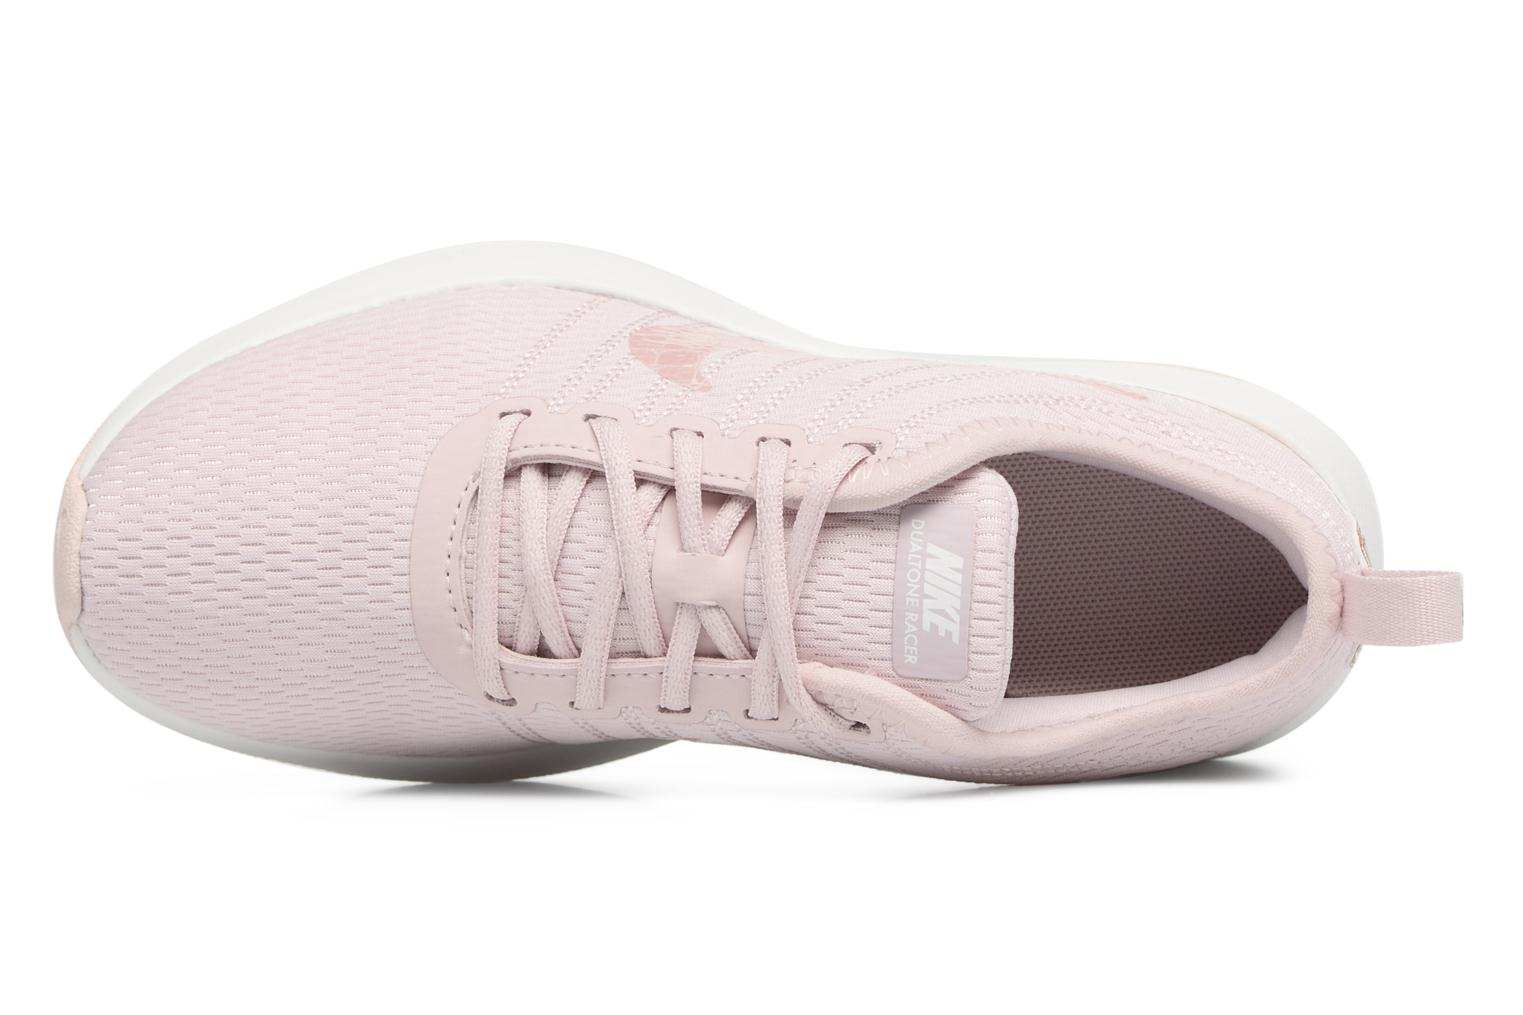 Barely Rose/Barely Rose-Mtlc Red Bronze Nike Nike Dualtone Racer (Ps) (Rose)